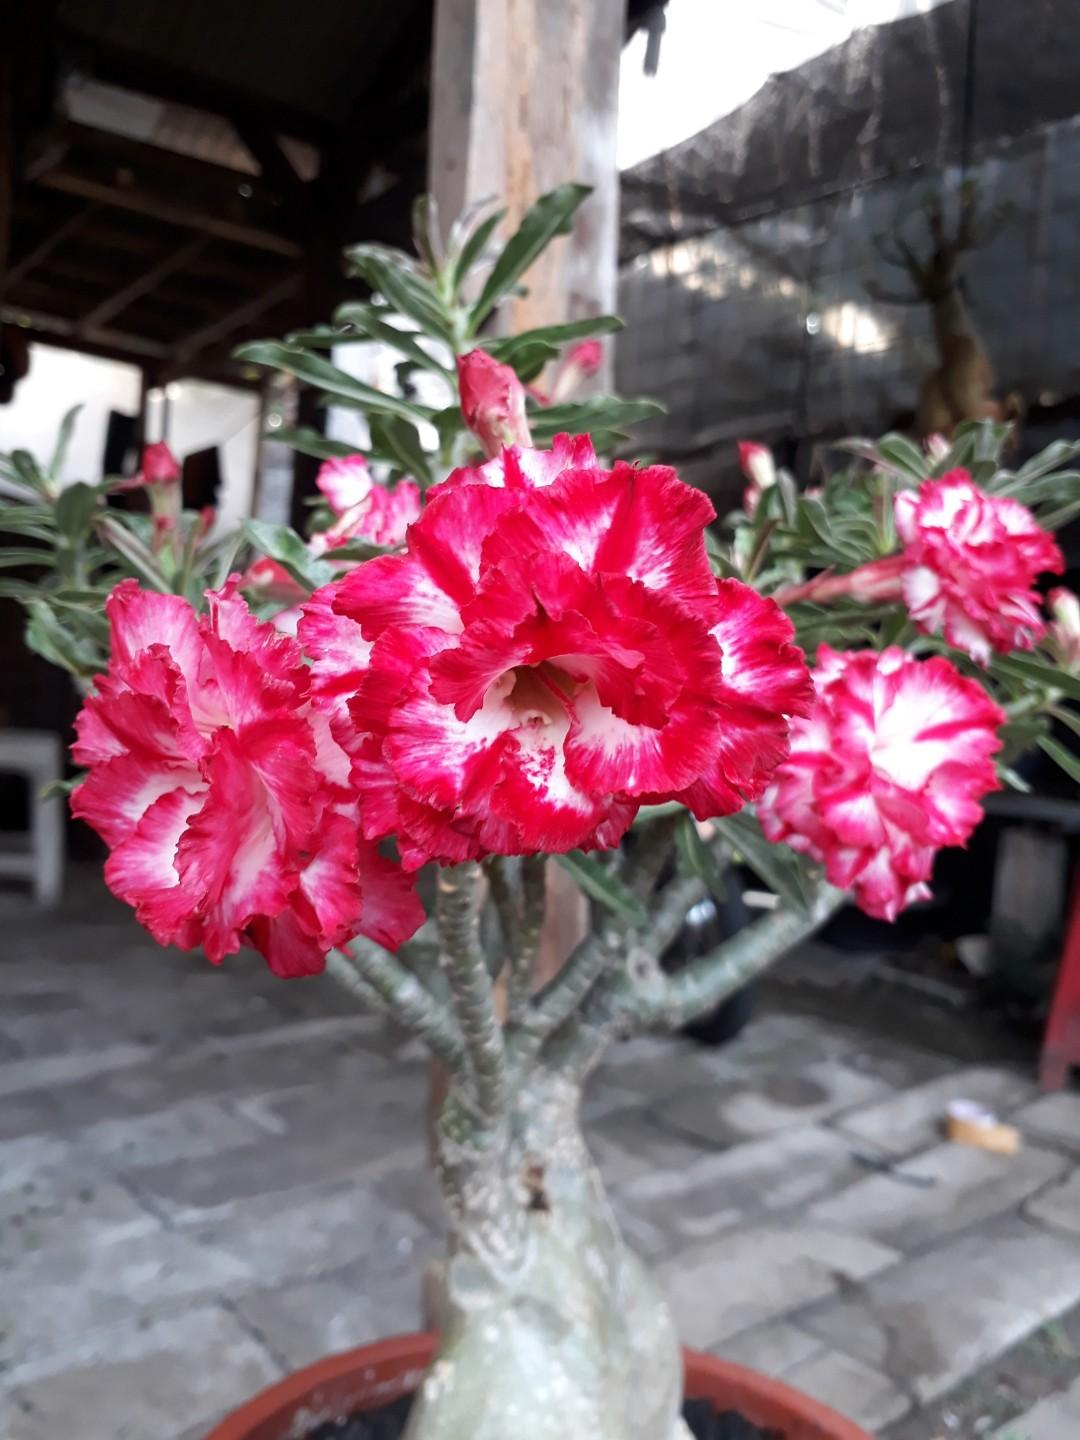 Adenium grafting phet monkon